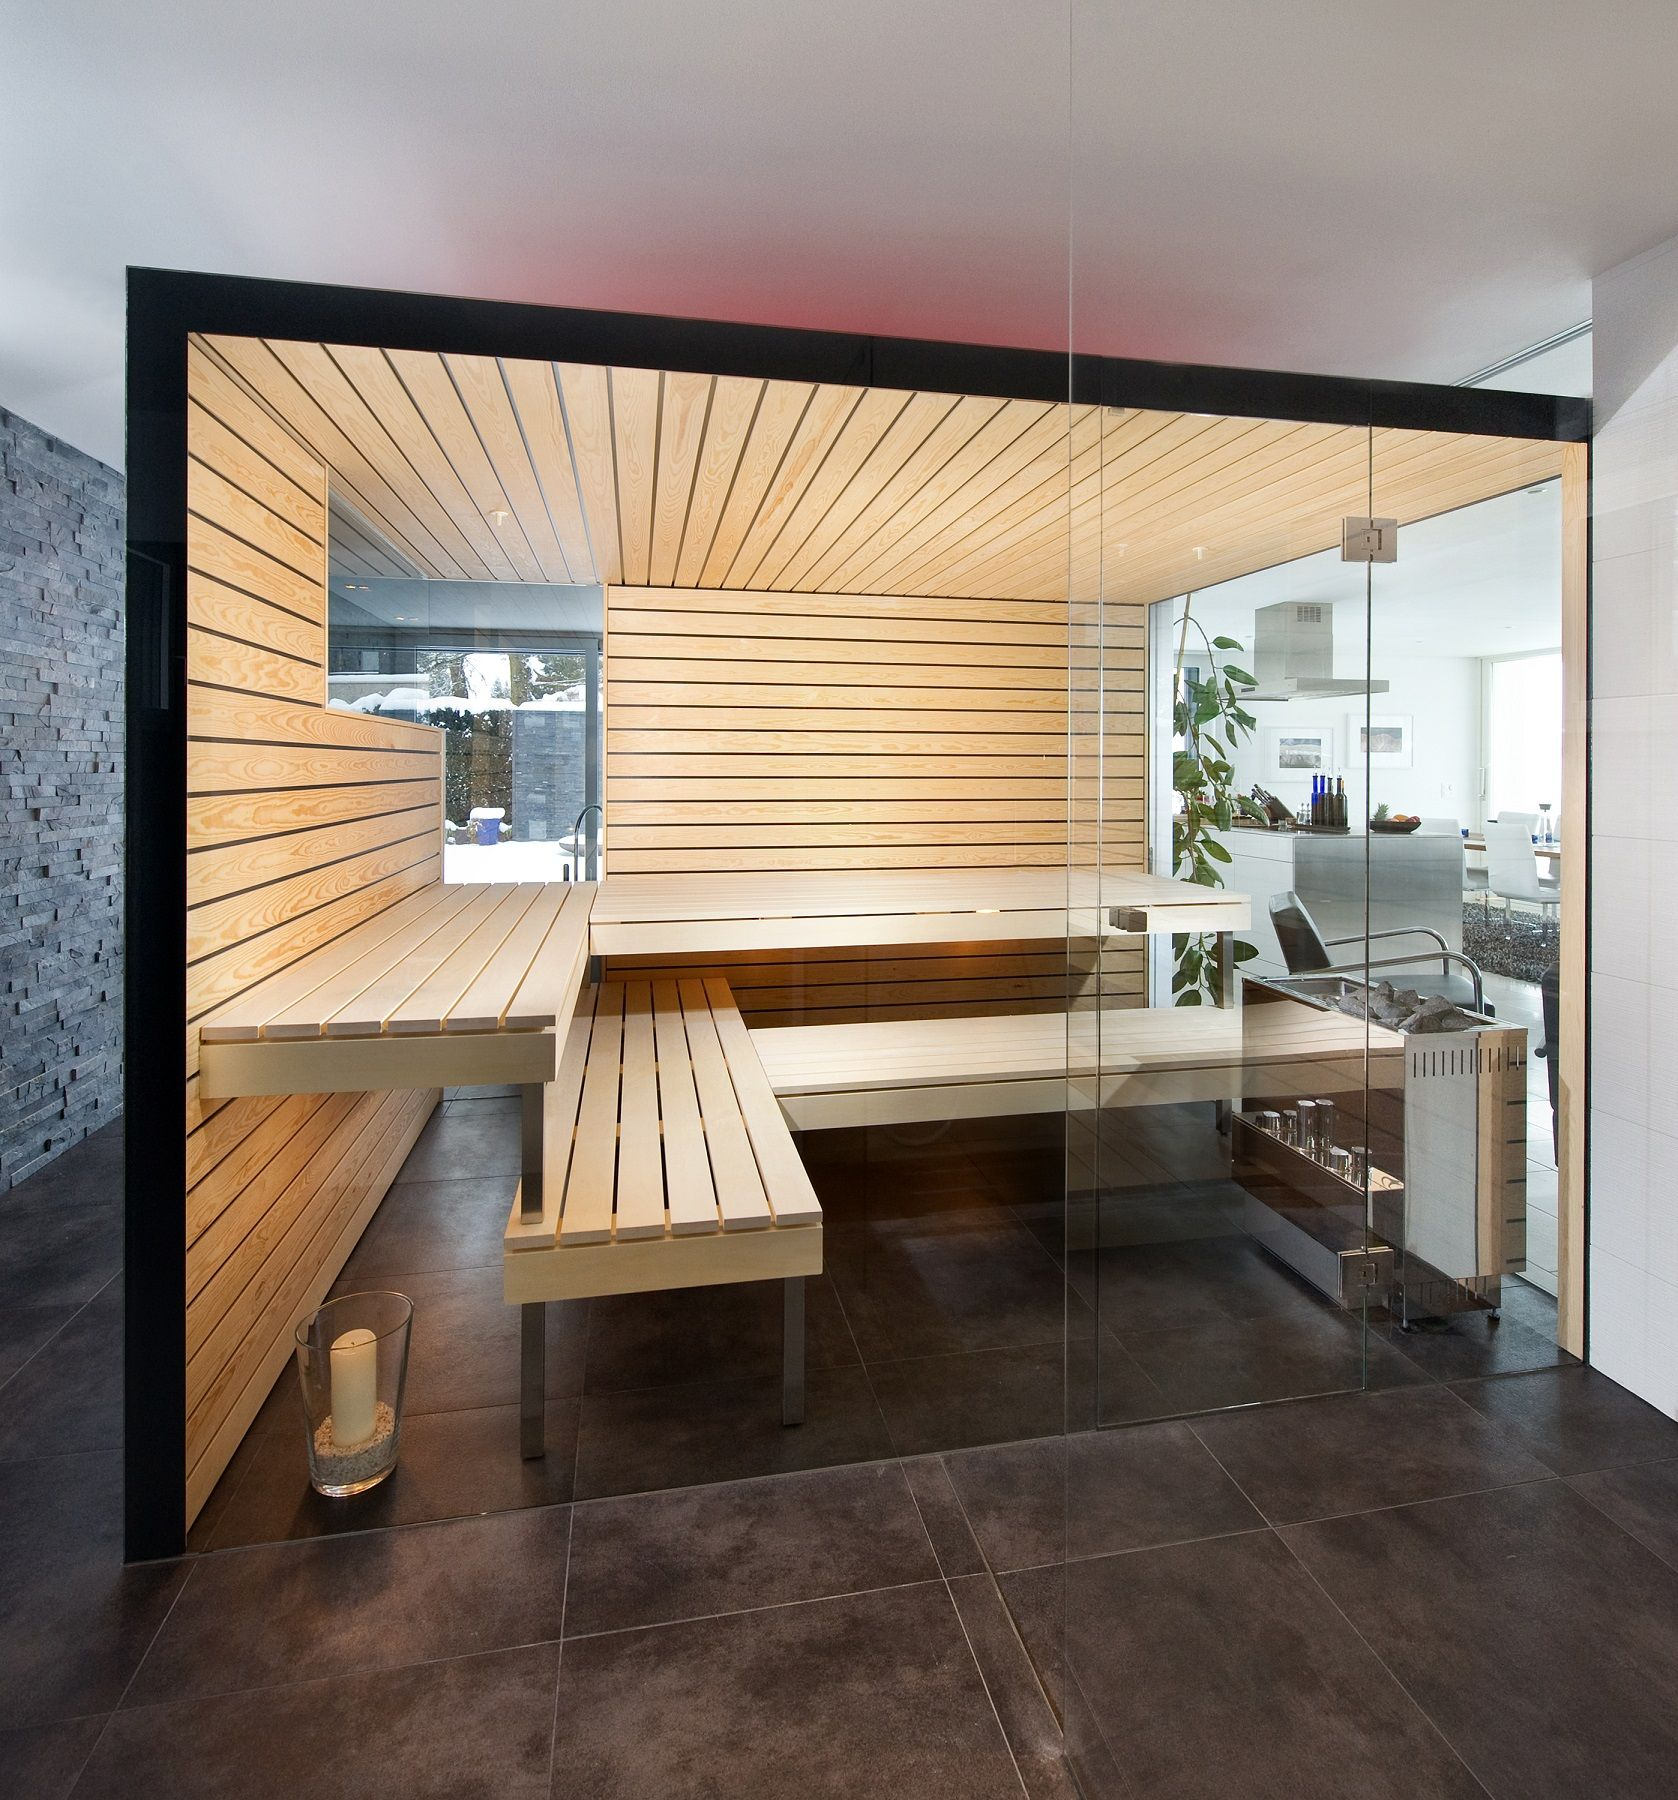 Amazing Sauna By Kung Saunas Home Gym Combining Views In